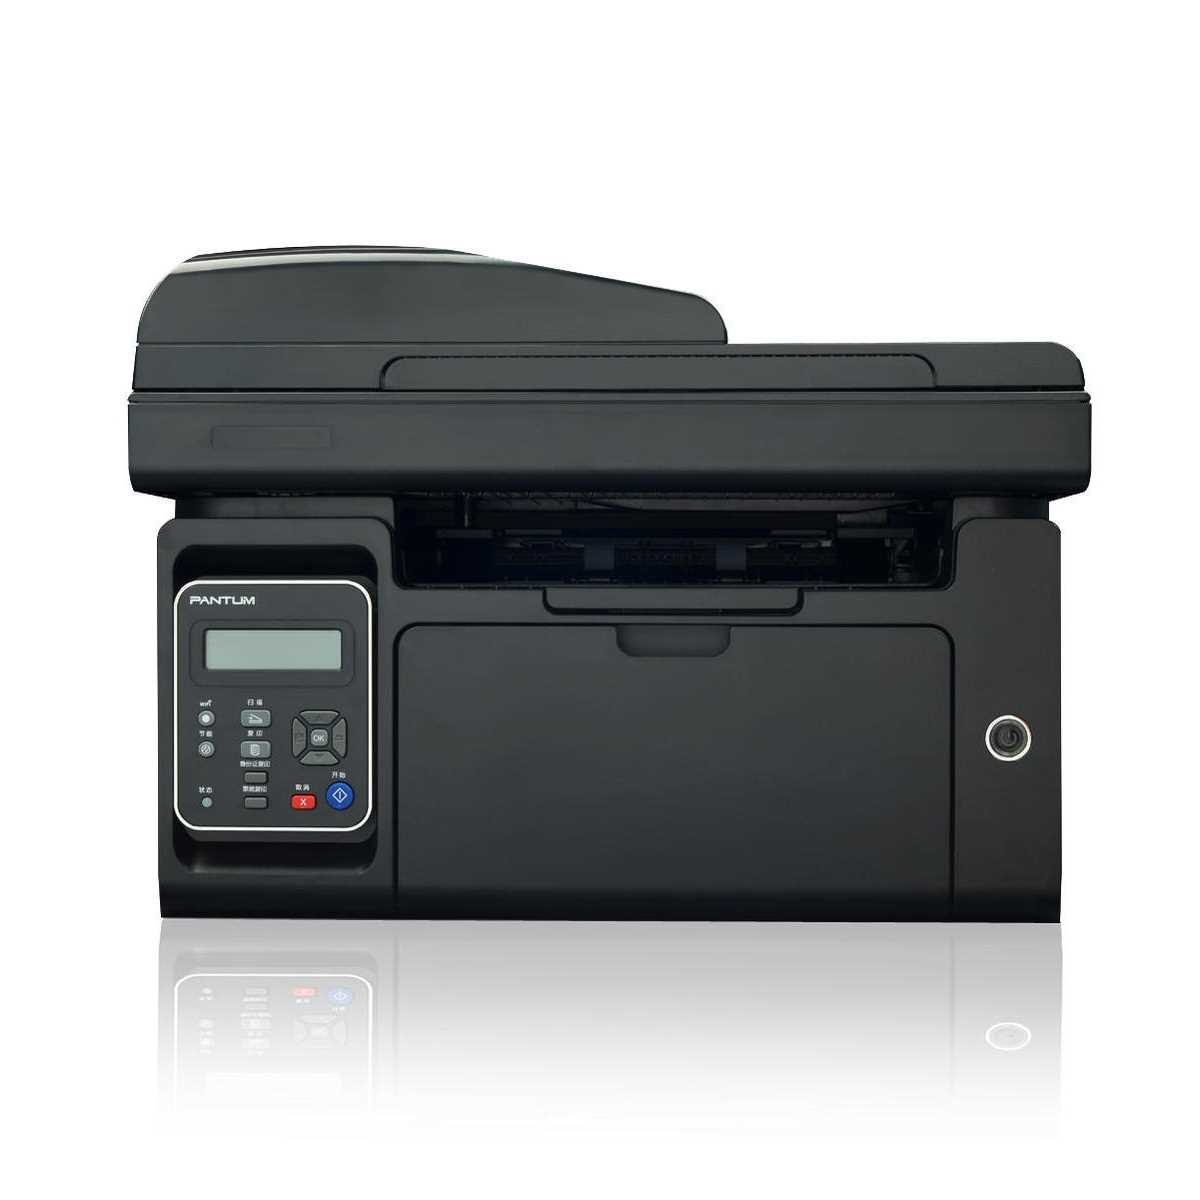 Pantum M6550N Laser Multifunction Printer